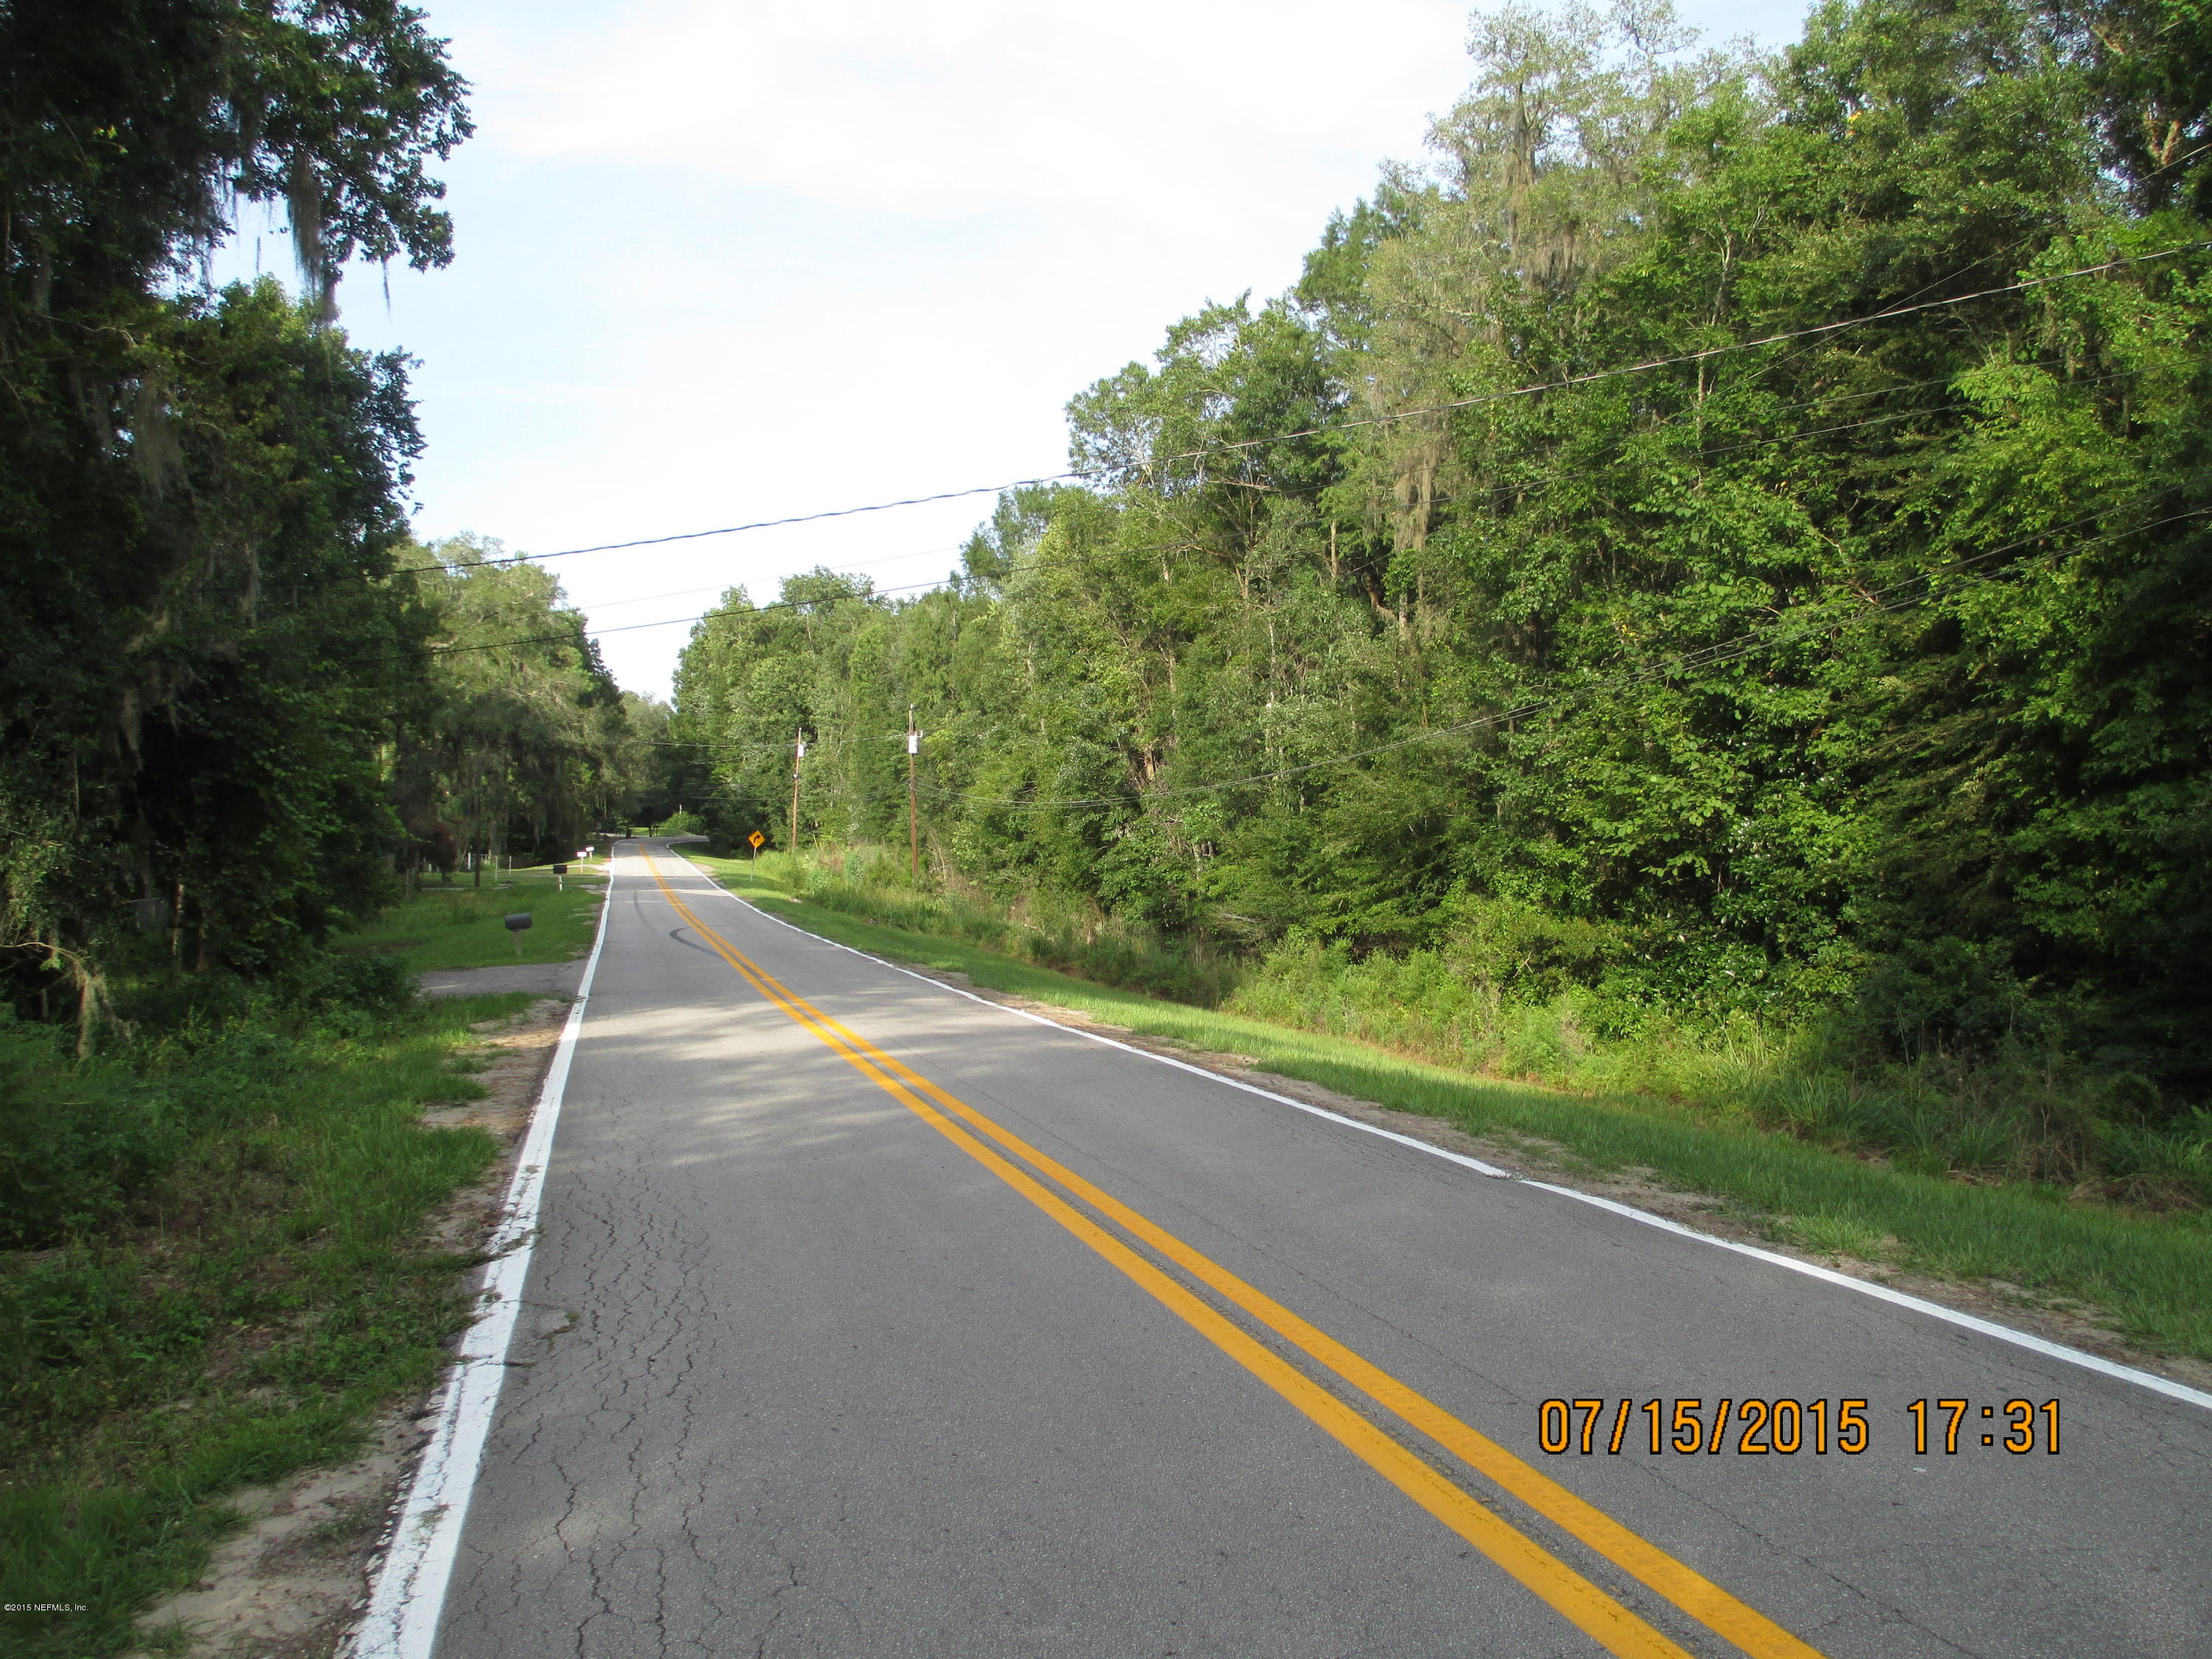 0000 SCENIC, MIDDLEBURG, FLORIDA 32068, ,Vacant land,For sale,SCENIC,782852